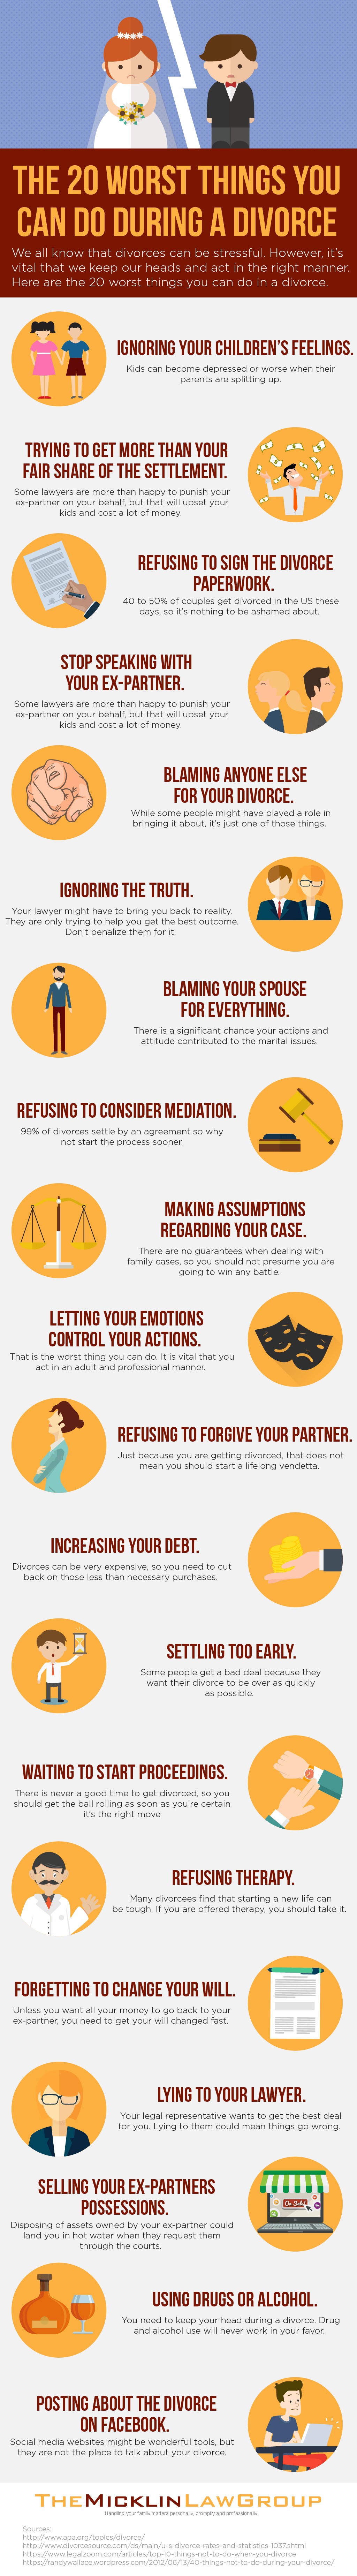 20-Worst-Things-You-Can-Do-During-a-Divorce-infographic-plaza